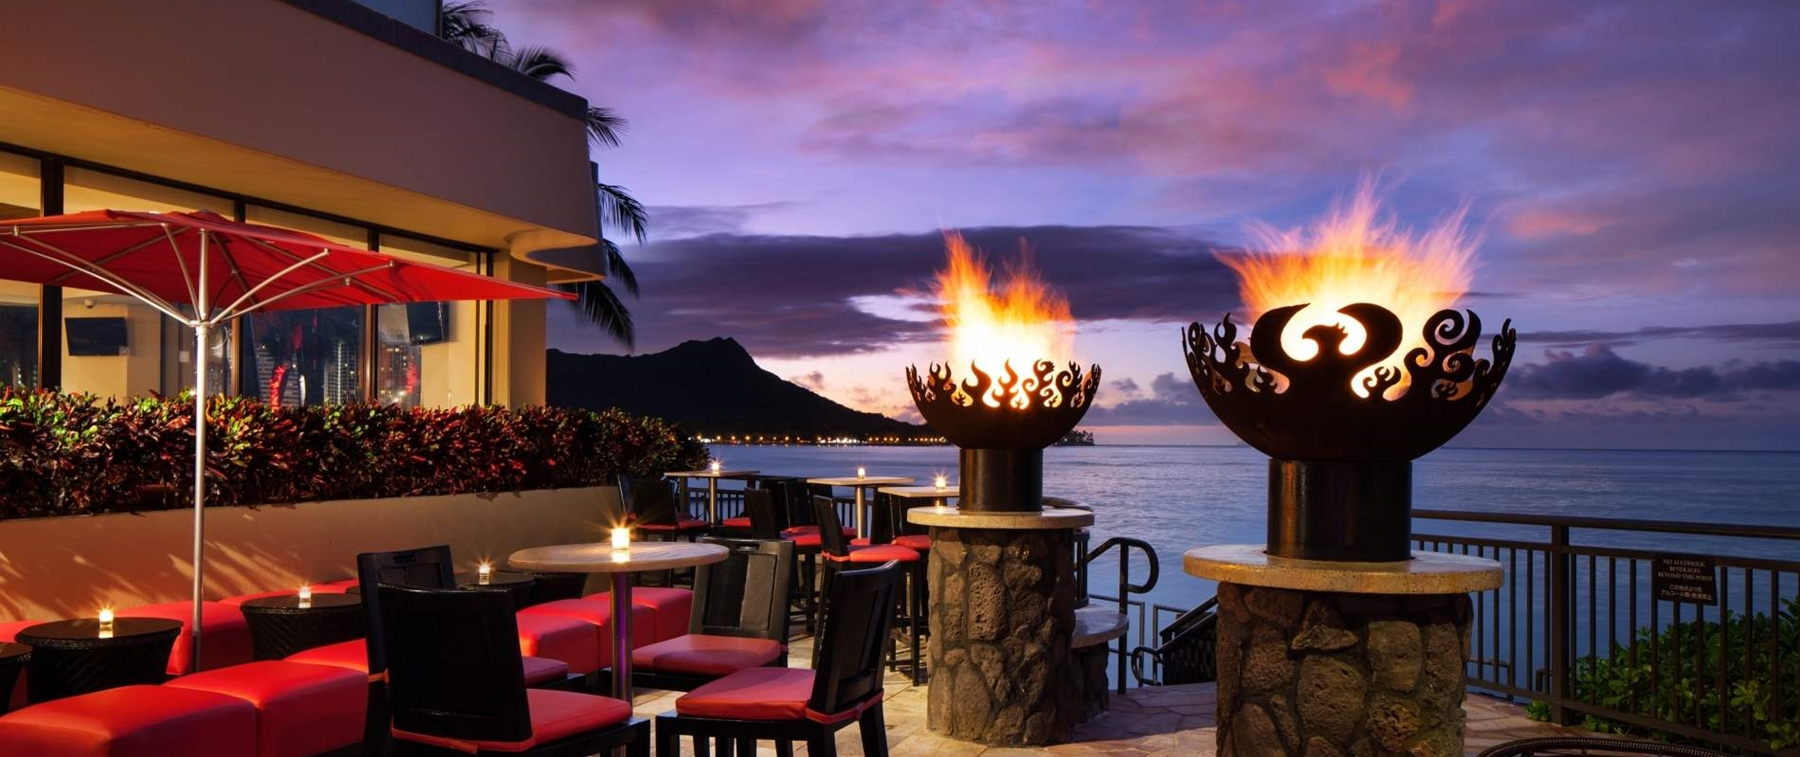 Outside seating with fire pillars